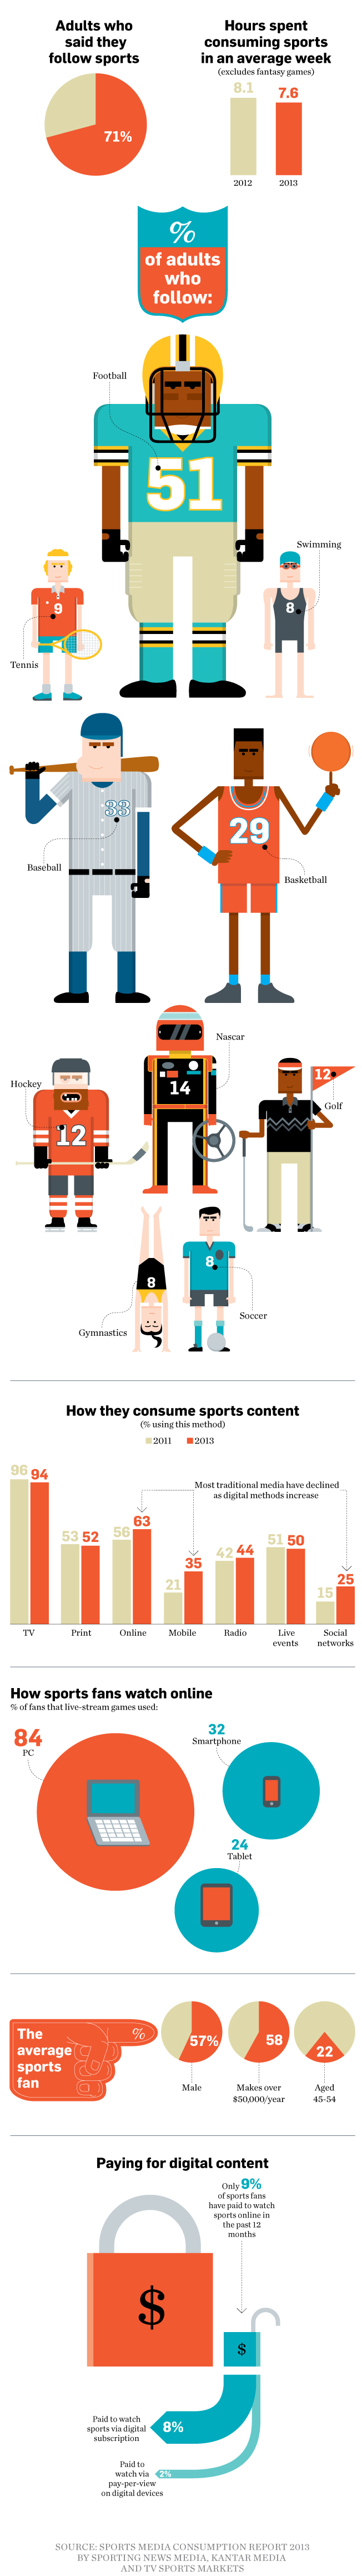 Tv Is No 1 In Sports Viewership Followed By The Internet Adweek